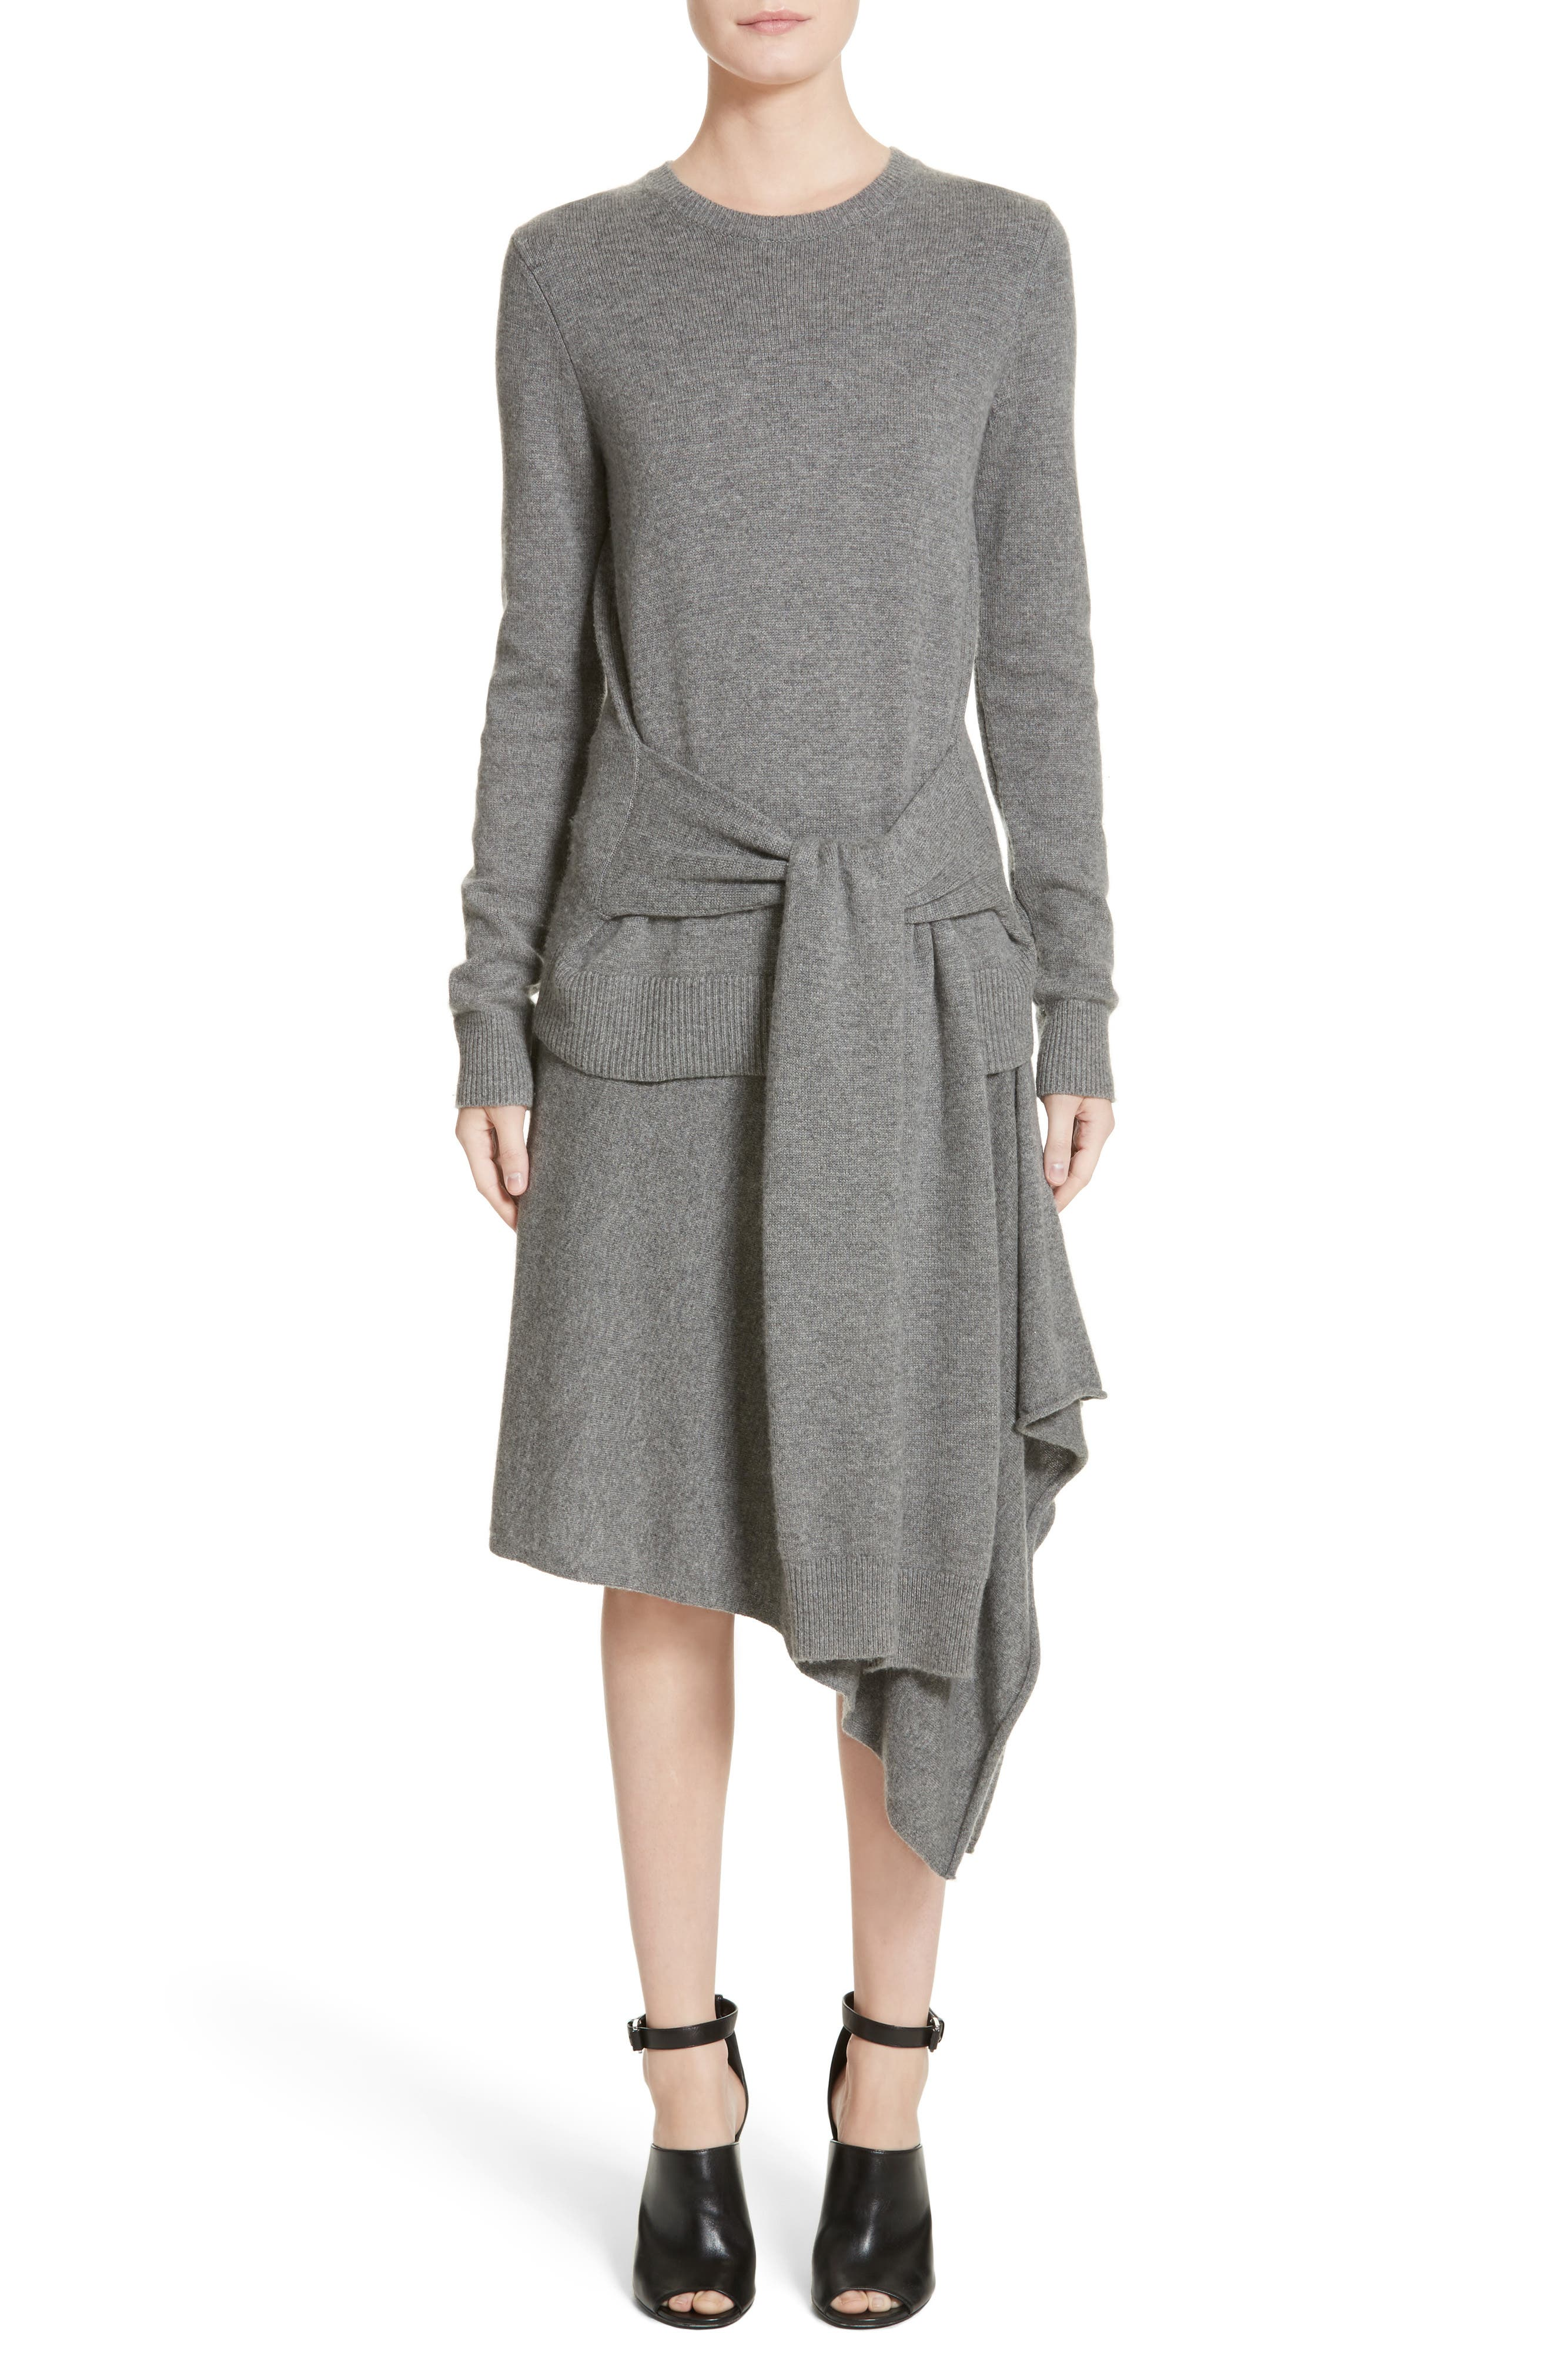 Michael Kors Sleeve Tie Cashmere Sweater